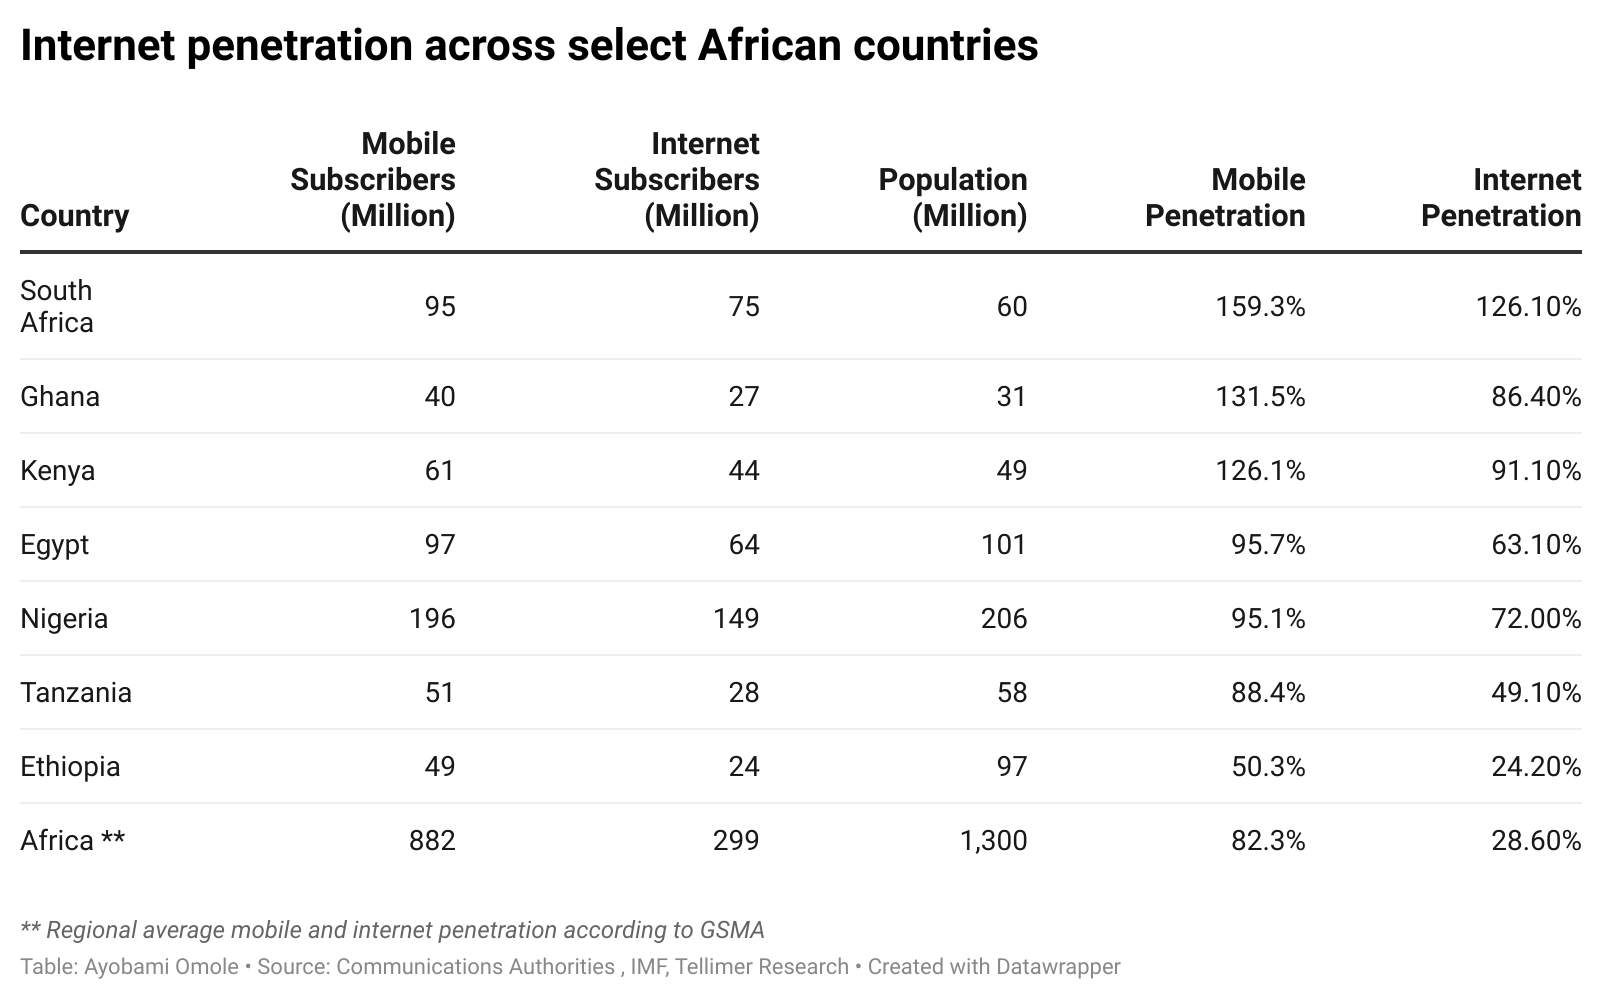 Internet penetration across select African countries